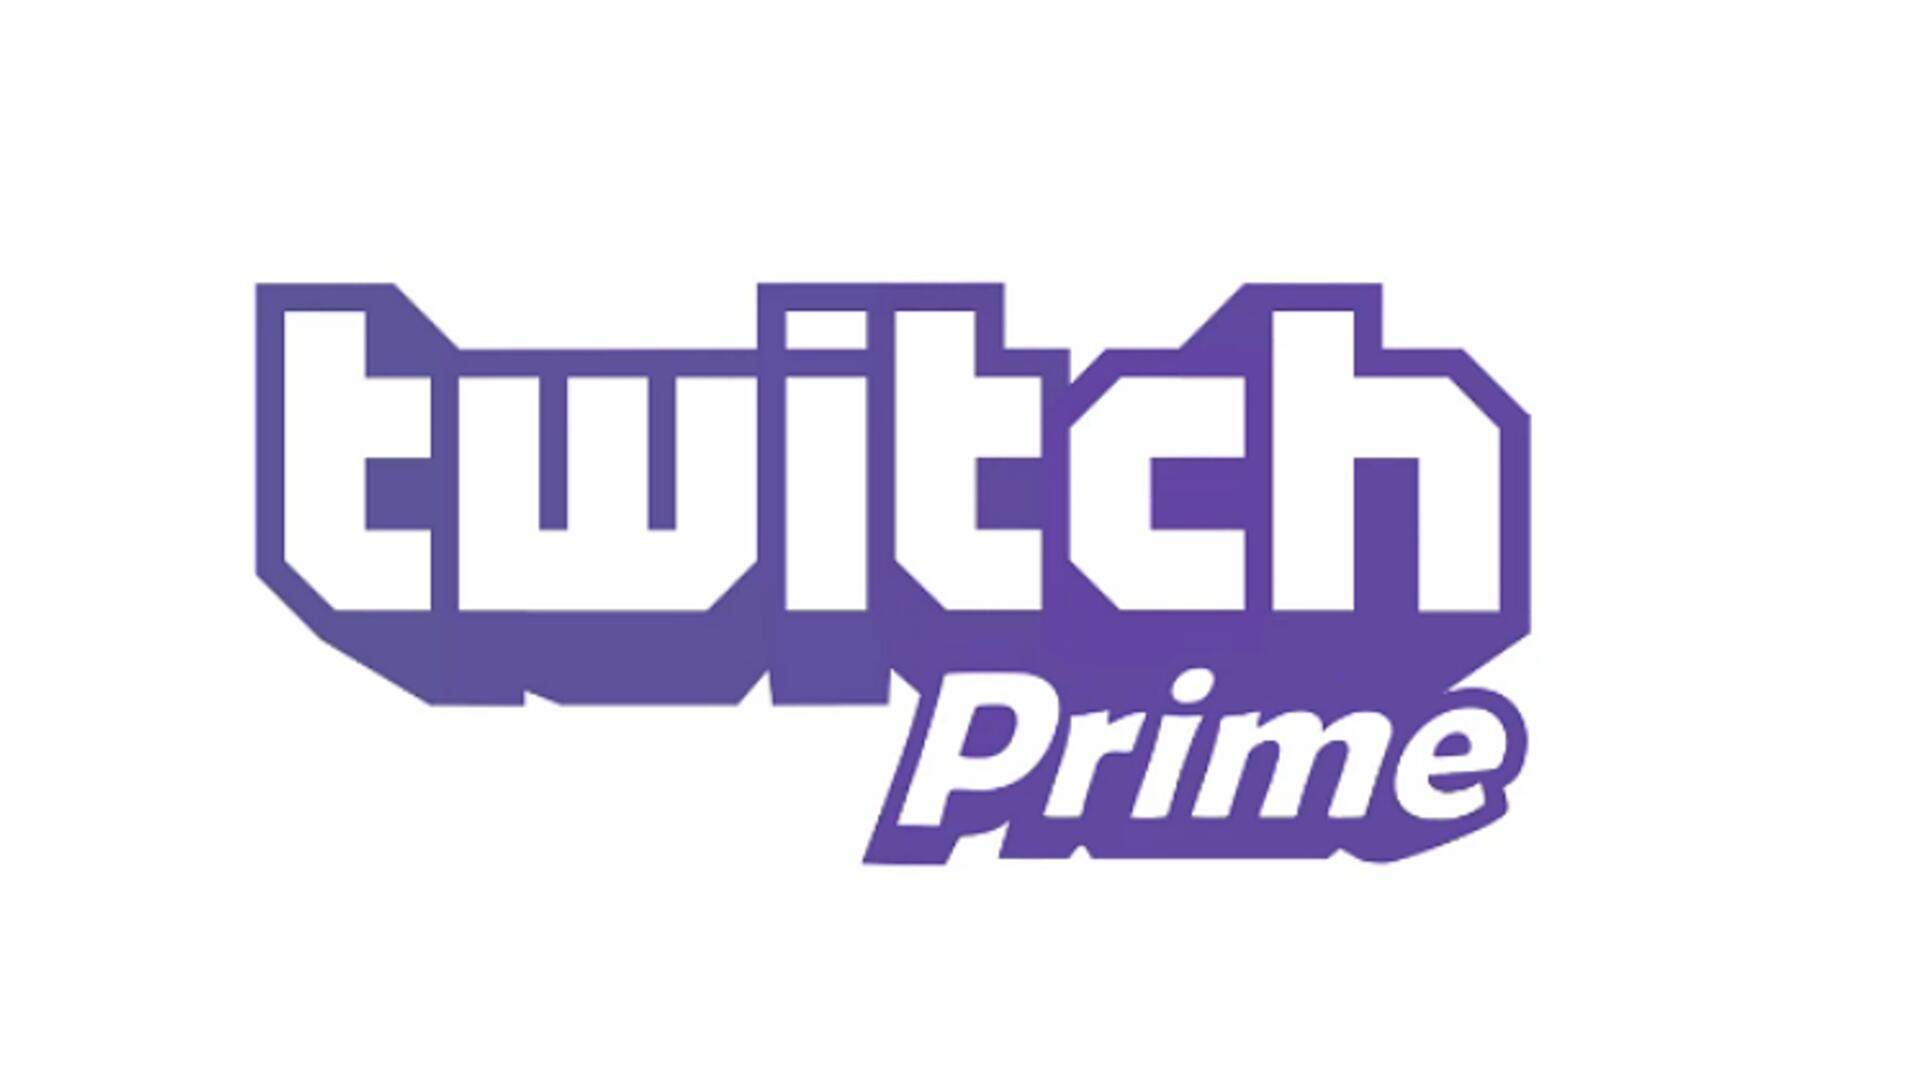 Twitch Prime Brings Amazon Prime Benefits to Twitch